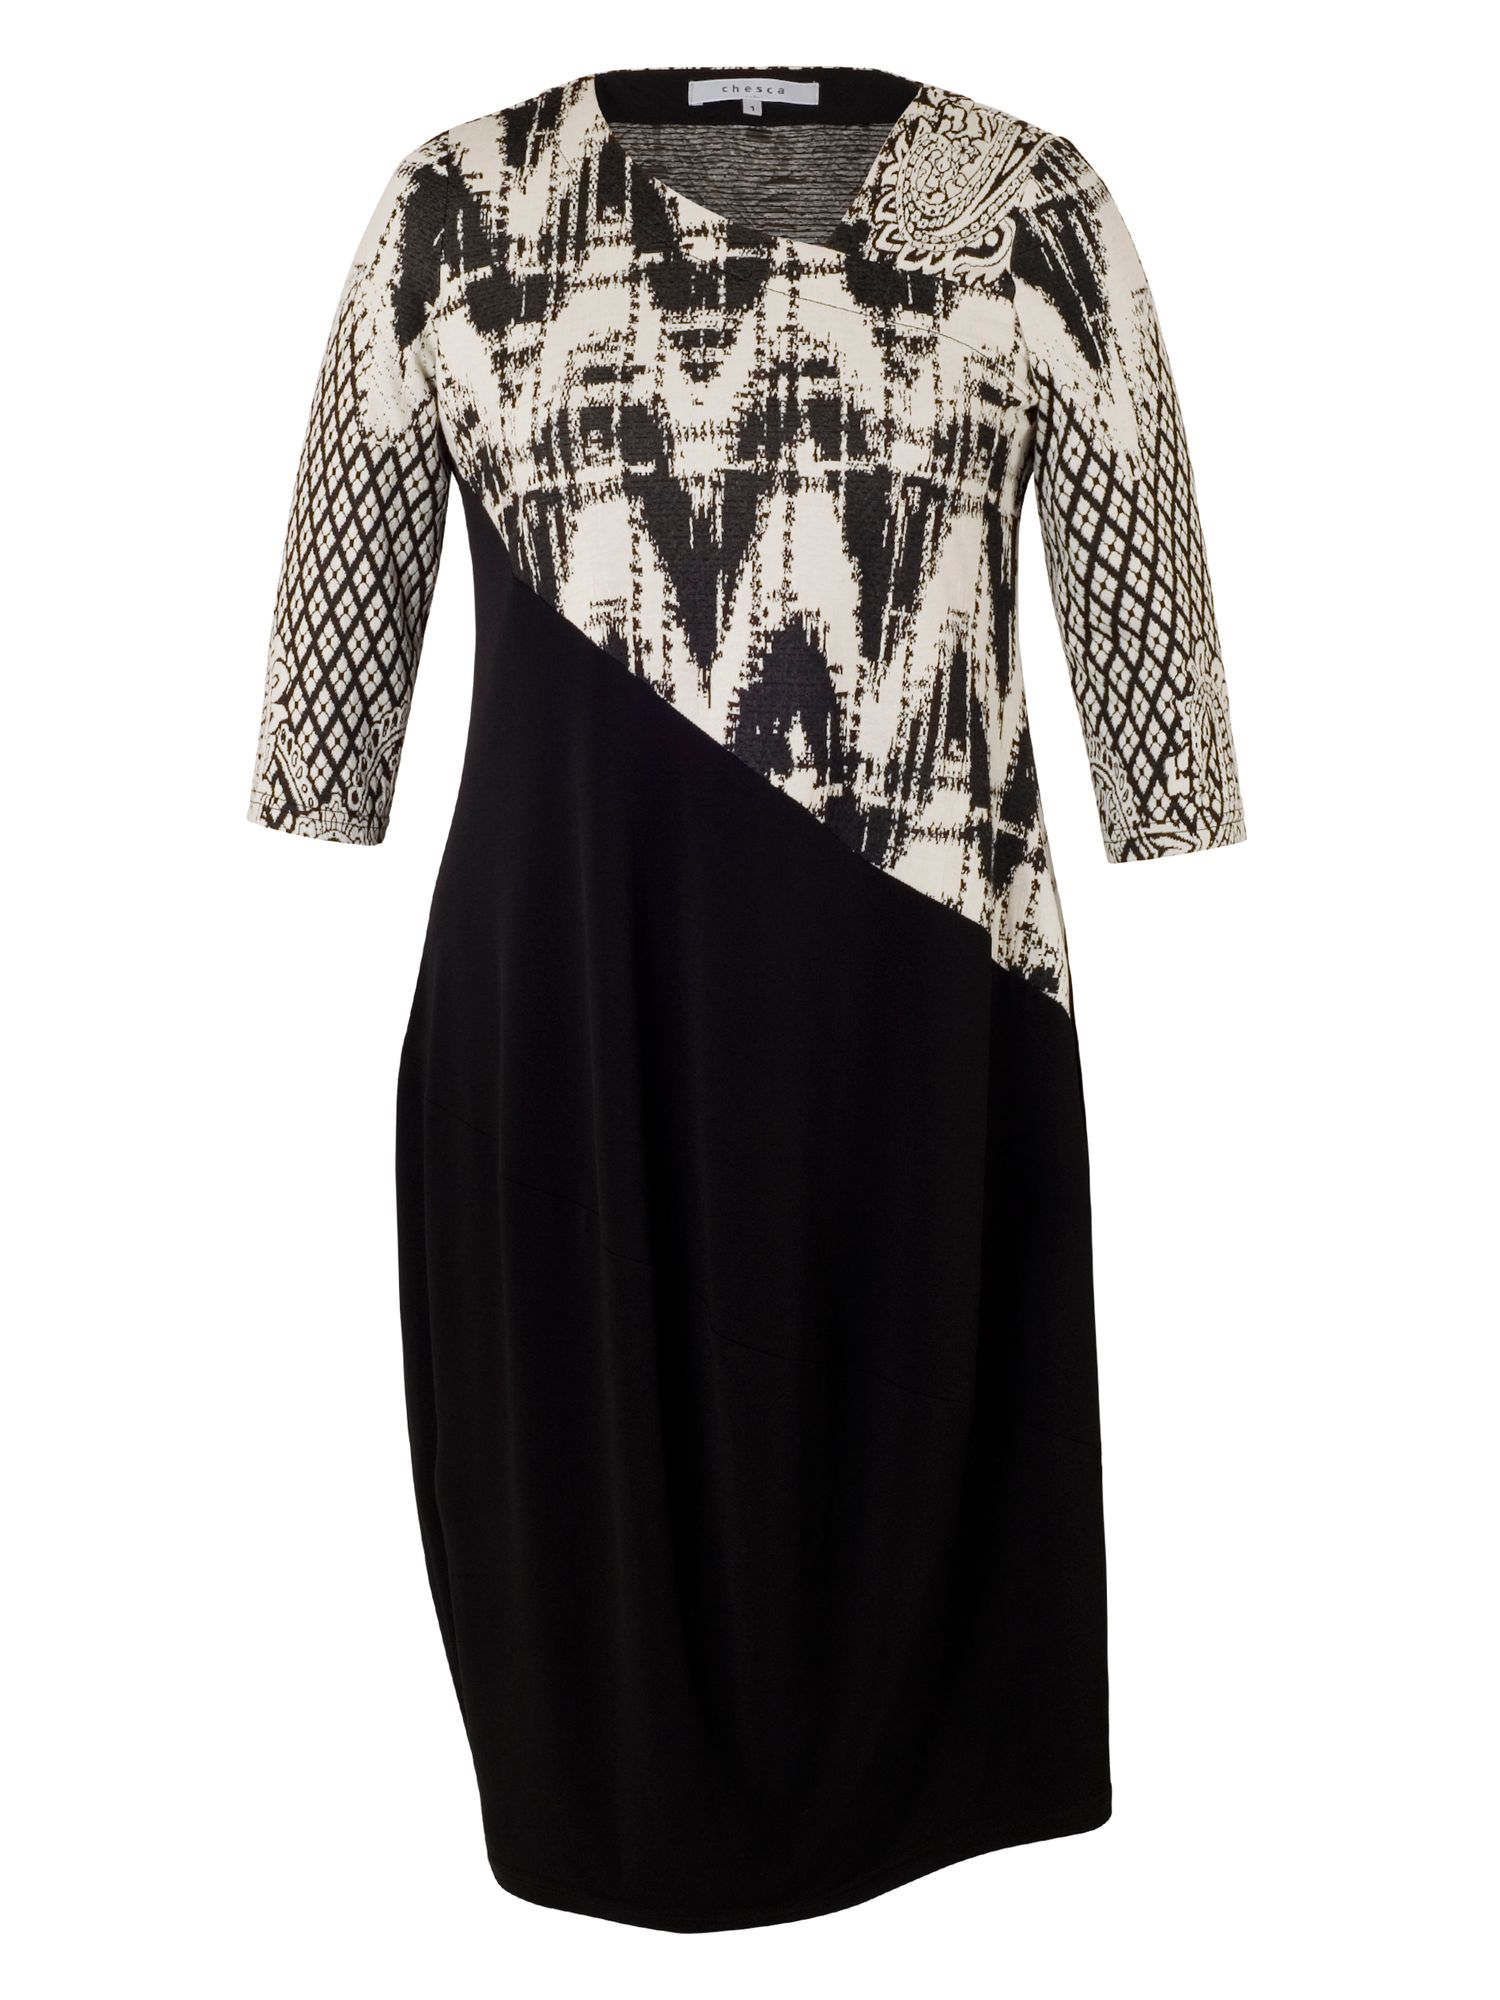 Chesca Jersey Dress with Paisley Jacquard Trim, Black